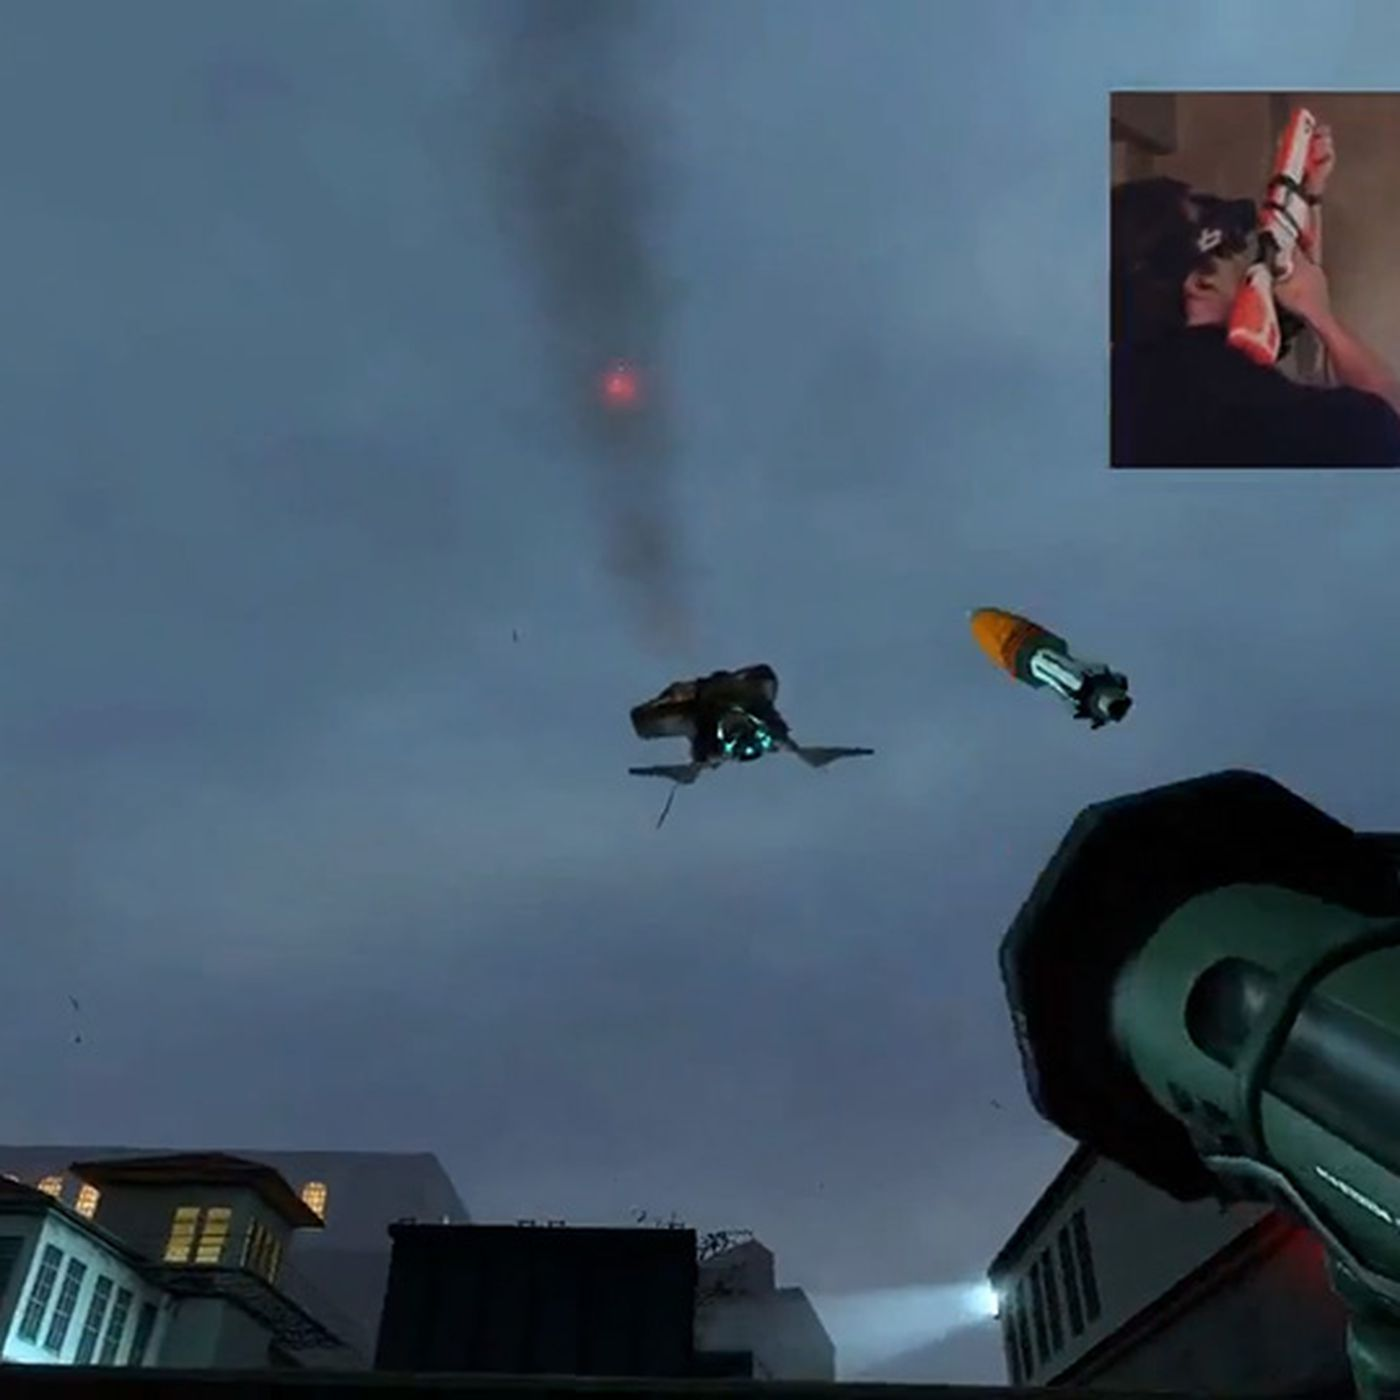 Half-Life 2 modded to add head and gun tracking ahead of